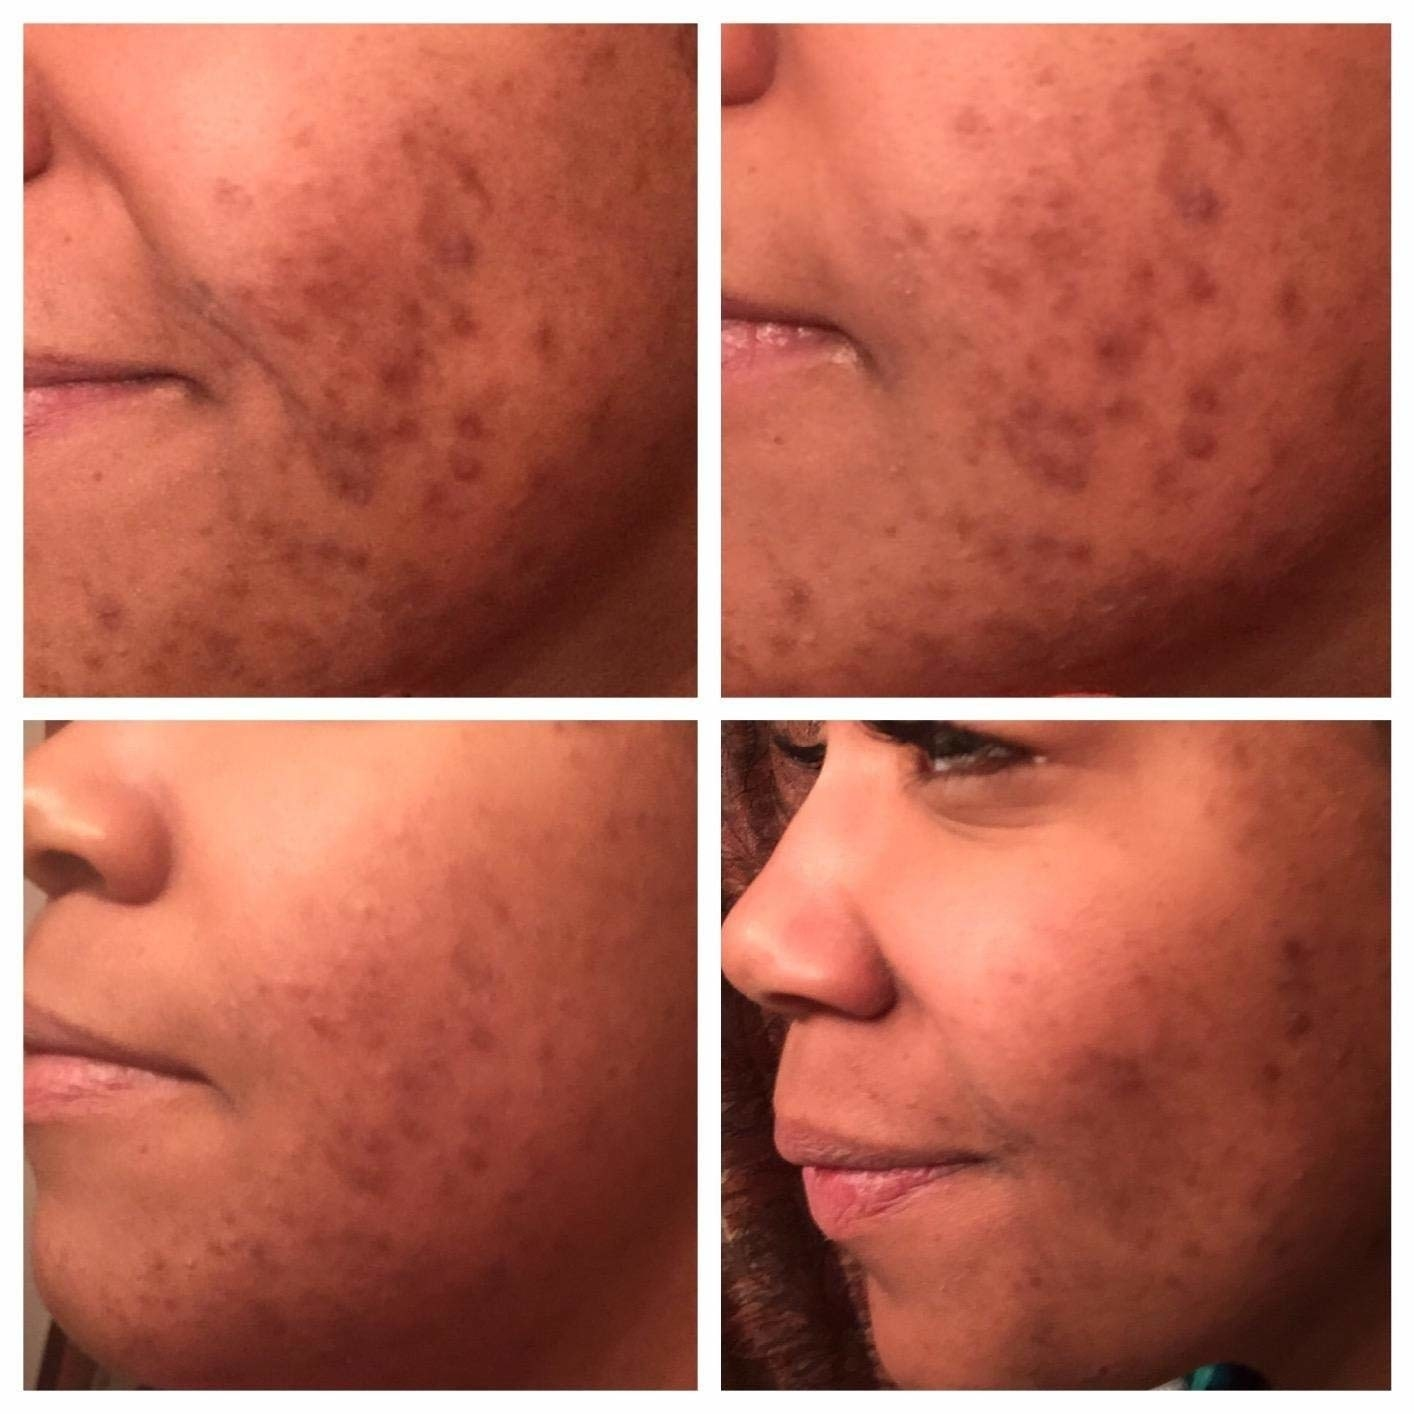 Four images showing a reviewer with healing acne and fading acne marks